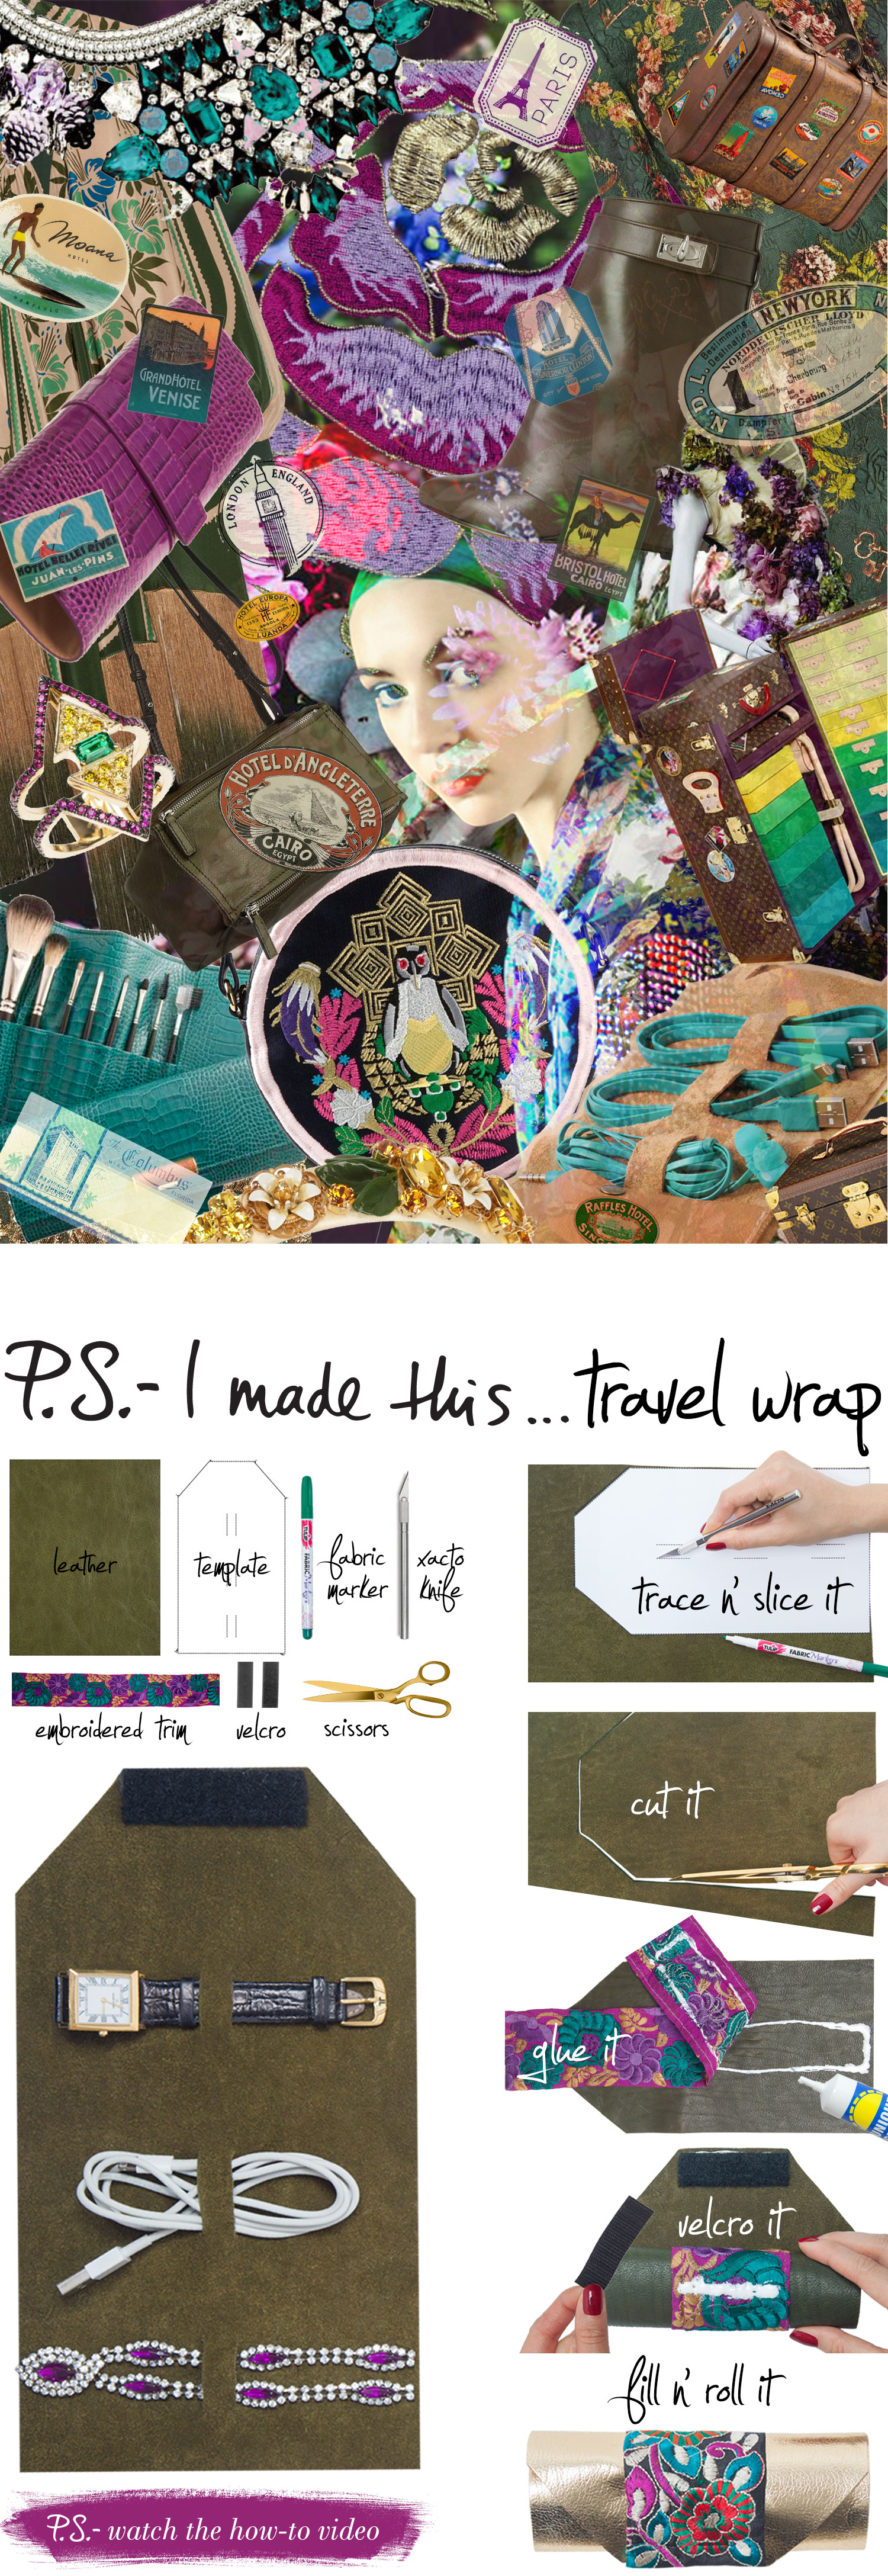 11.06.14_Travel-Wrap-MERGED